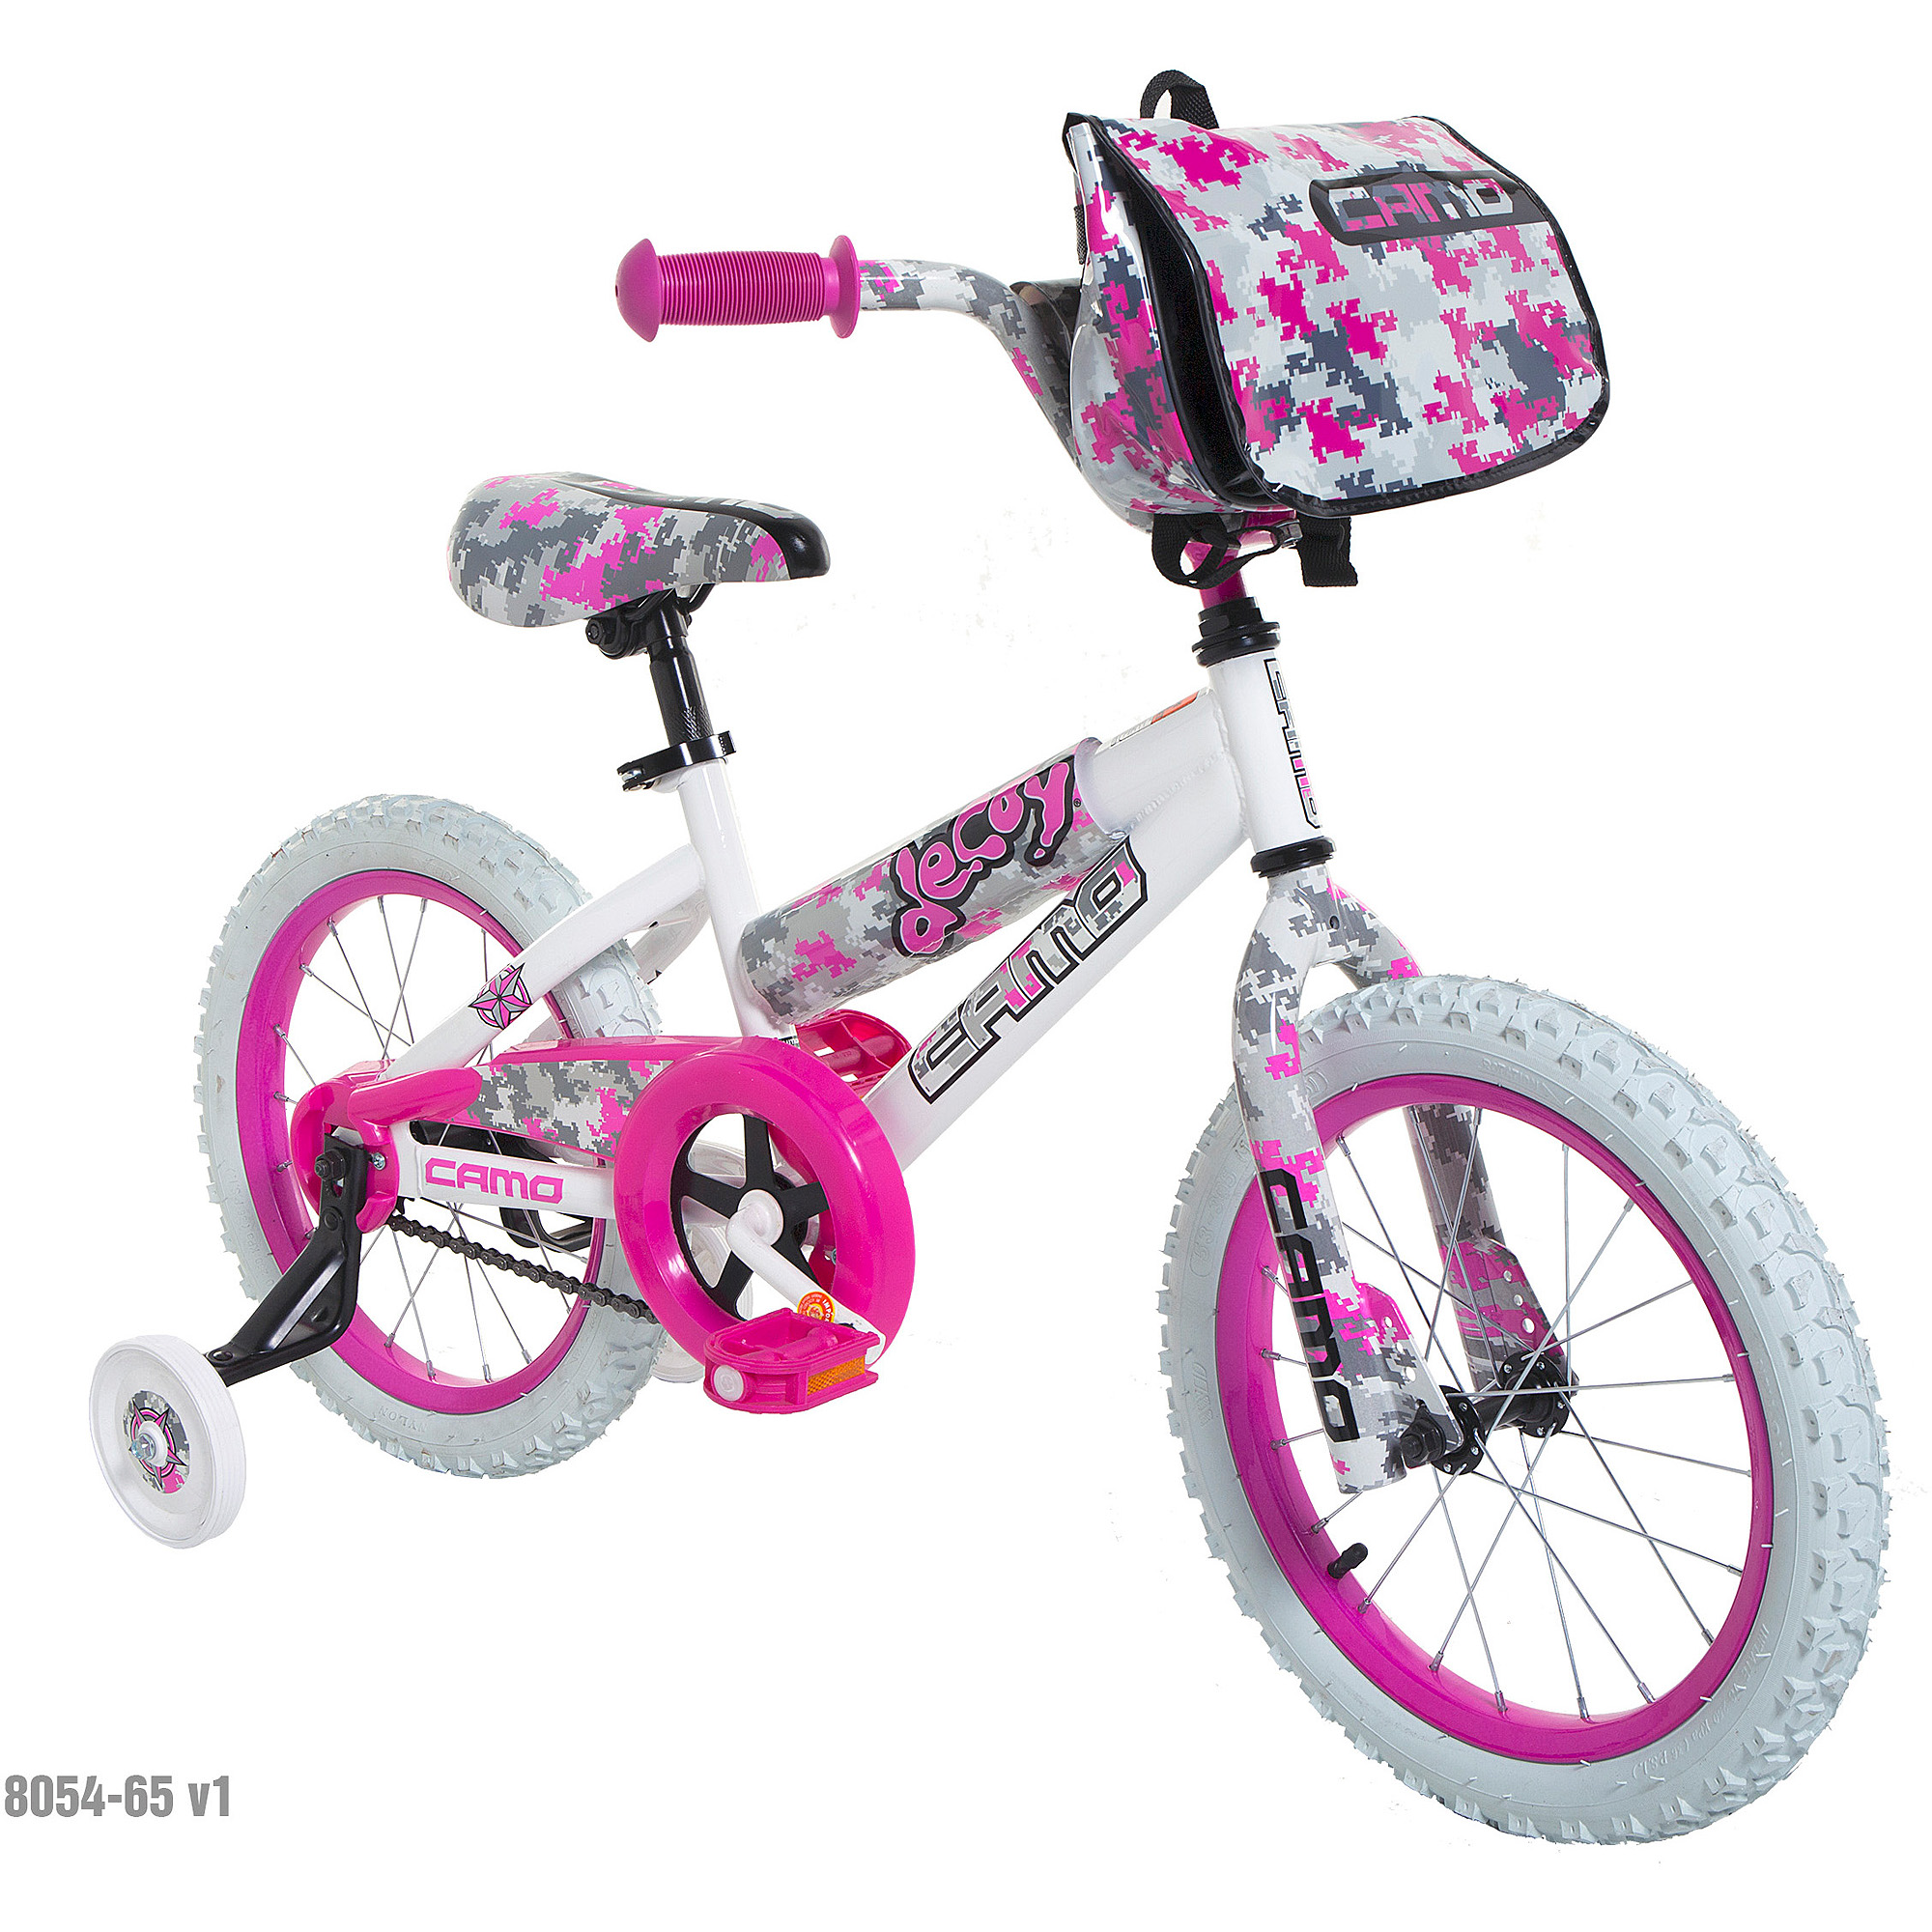 "16"" Camo Decoy Girls' Bike by Dynacraft"